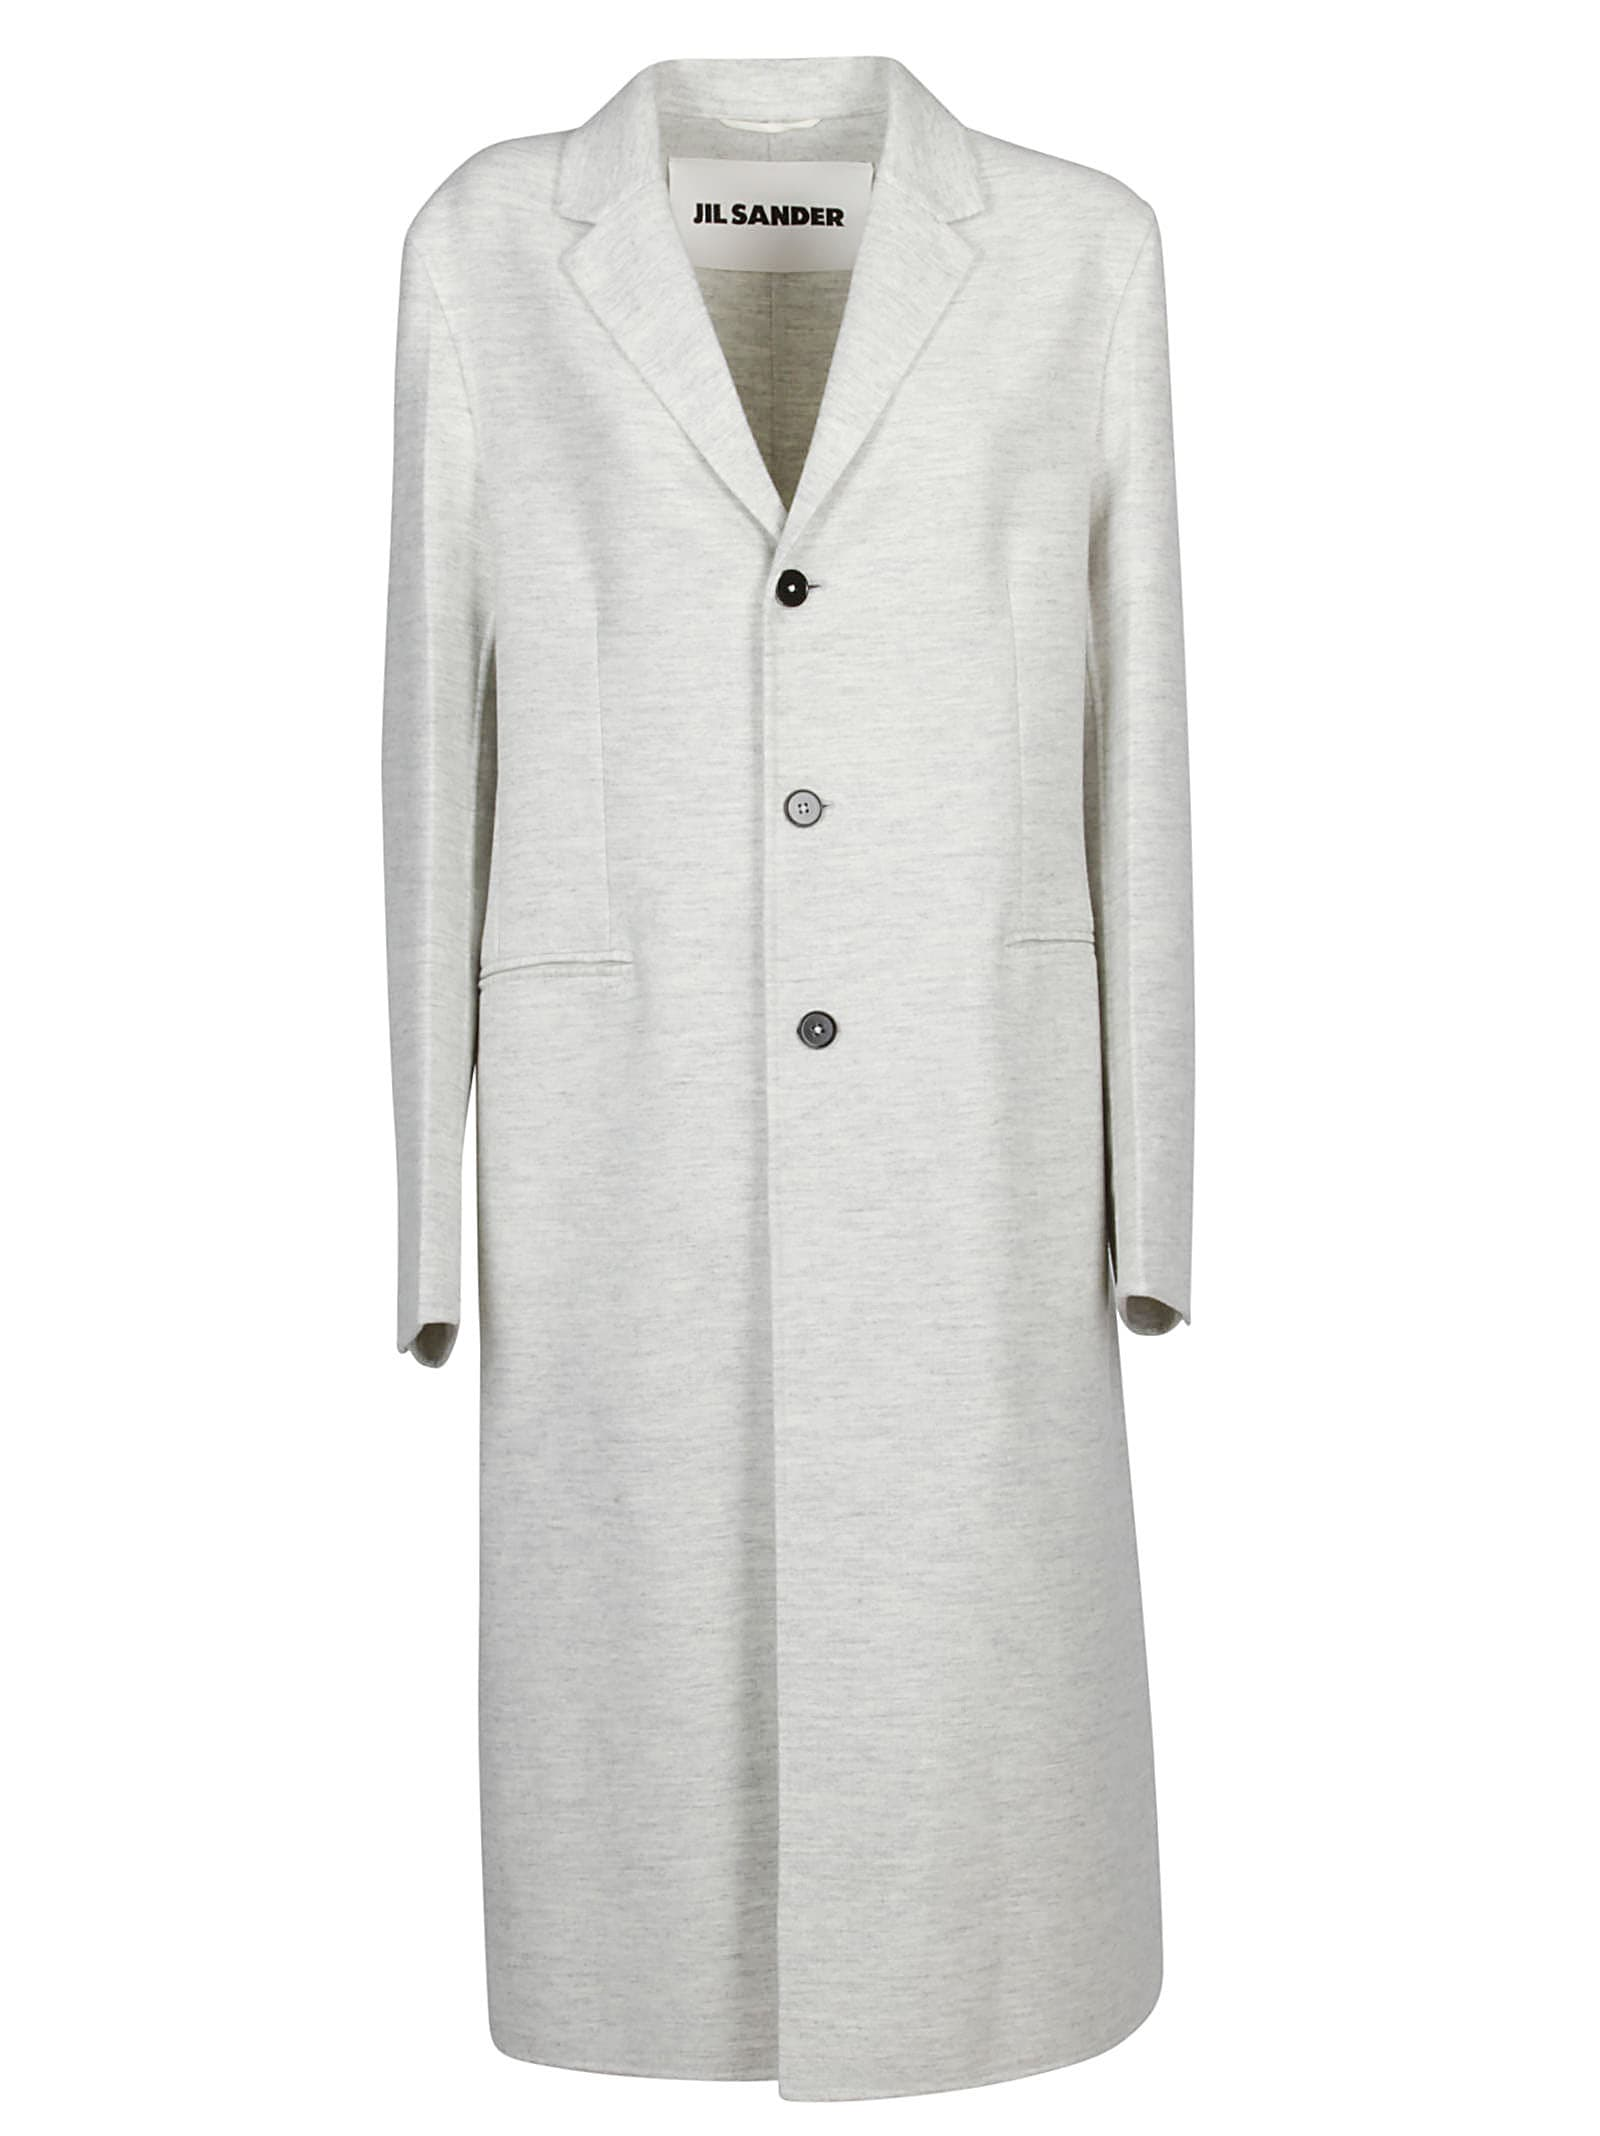 Jil Sander Single-breasted Coat